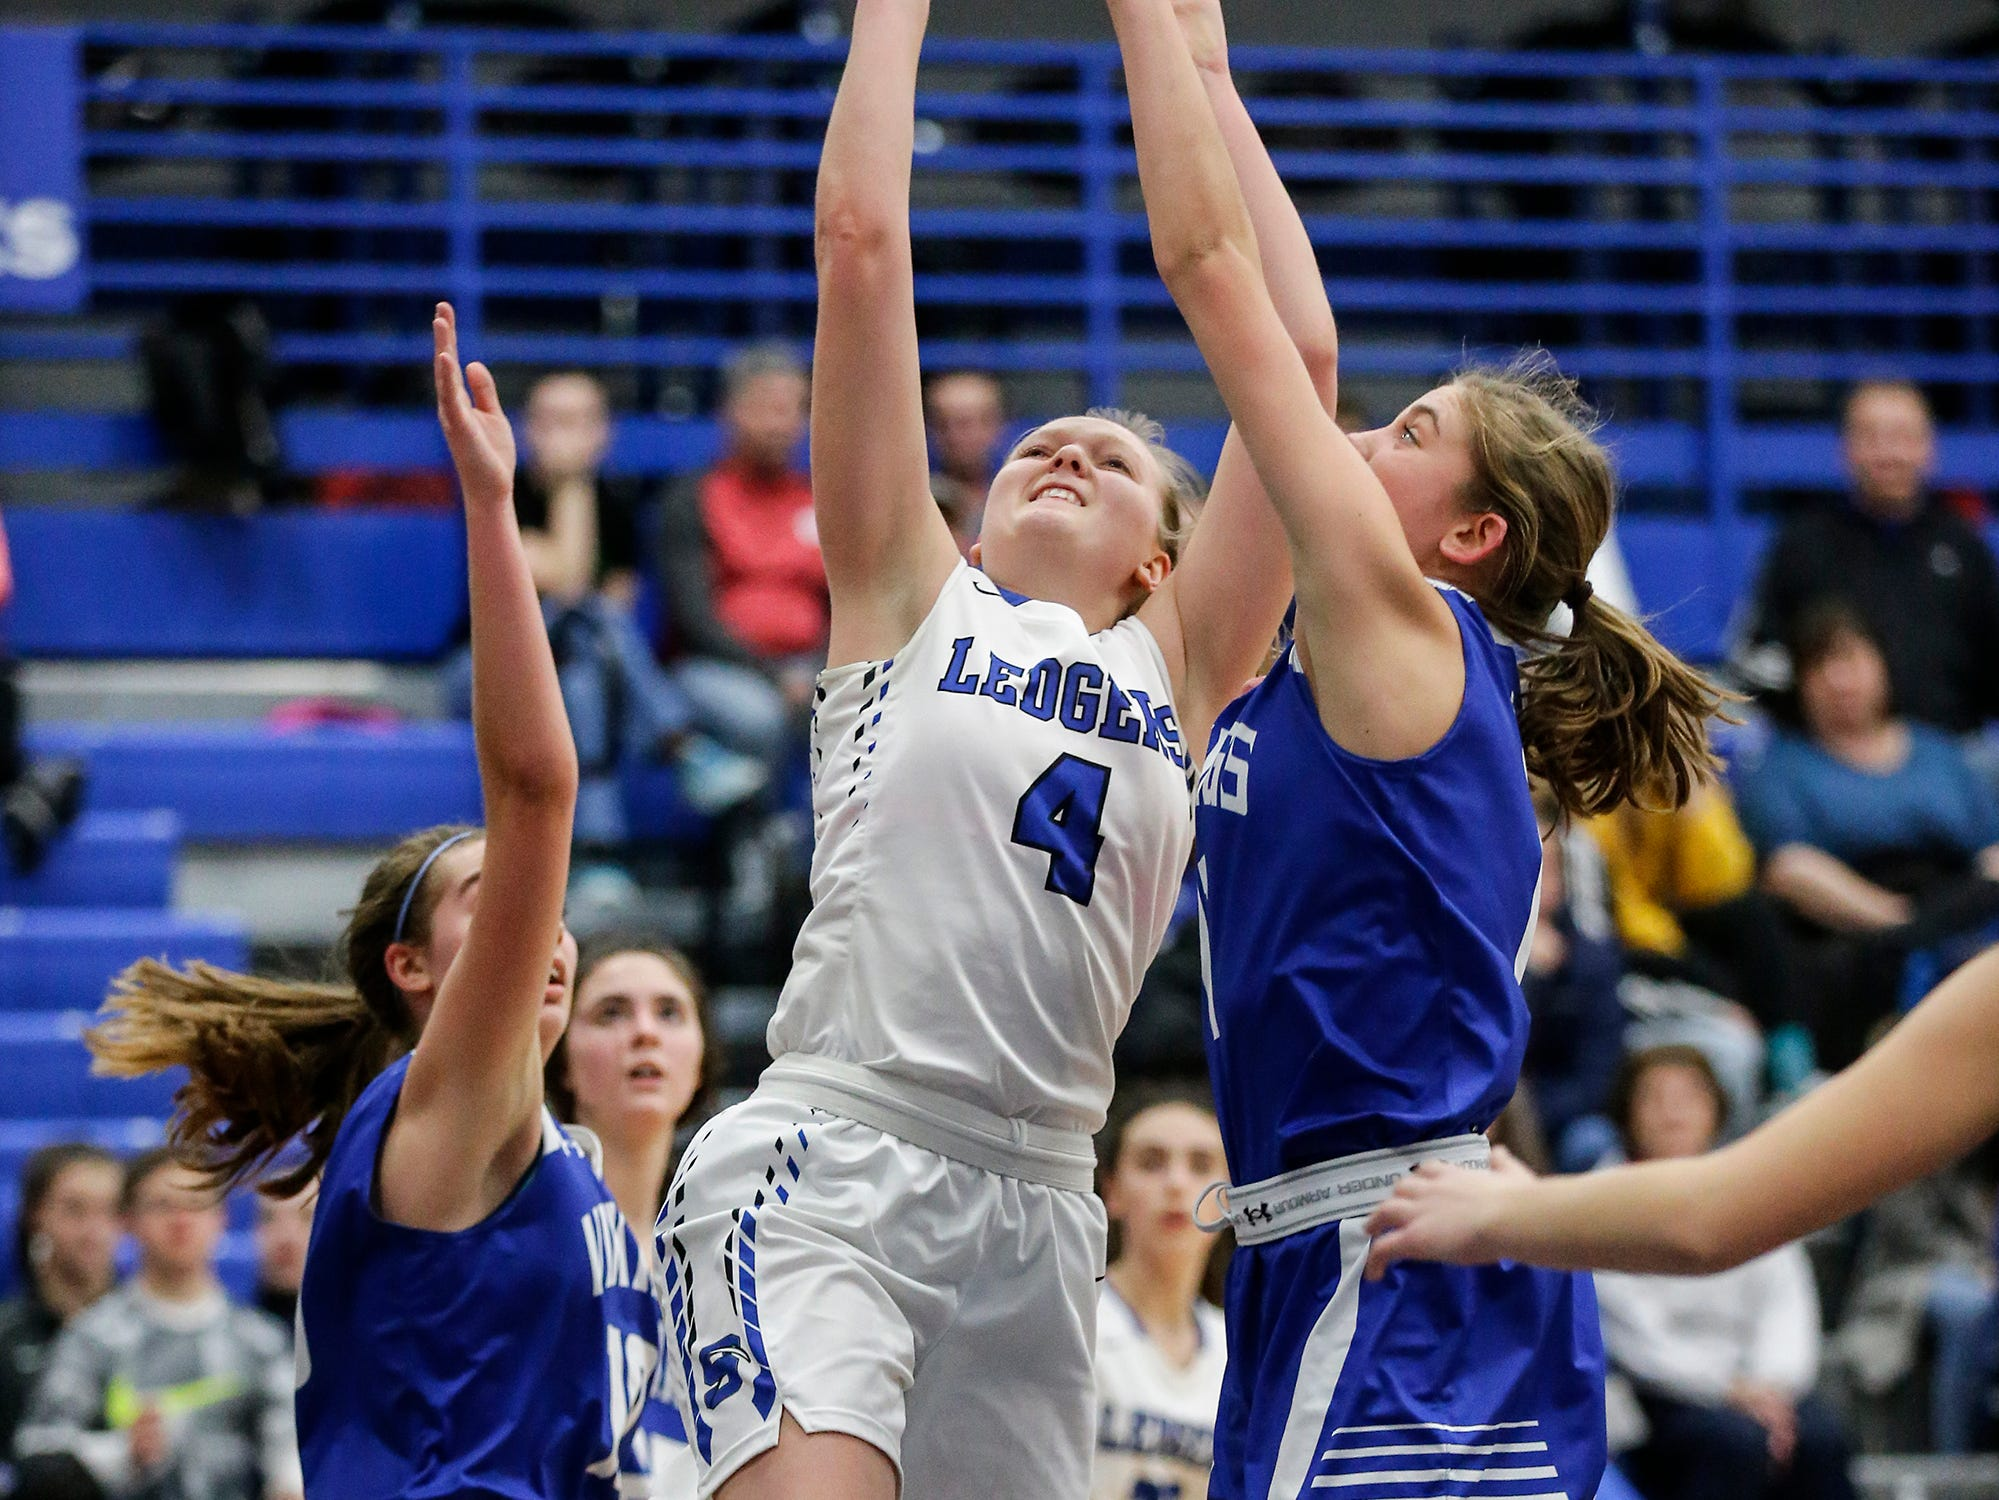 St. Mary's Springs Academy girls basketball's Brianna Freund goes up for a basket against Winnebago Lutheran Academy during their game Tuesday, December 18, 2018 in Fond du Lac. Winnebago Lutheran Academy won the game 58-54. Doug Raflik/USA TODAY NETWORK-Wisconsin